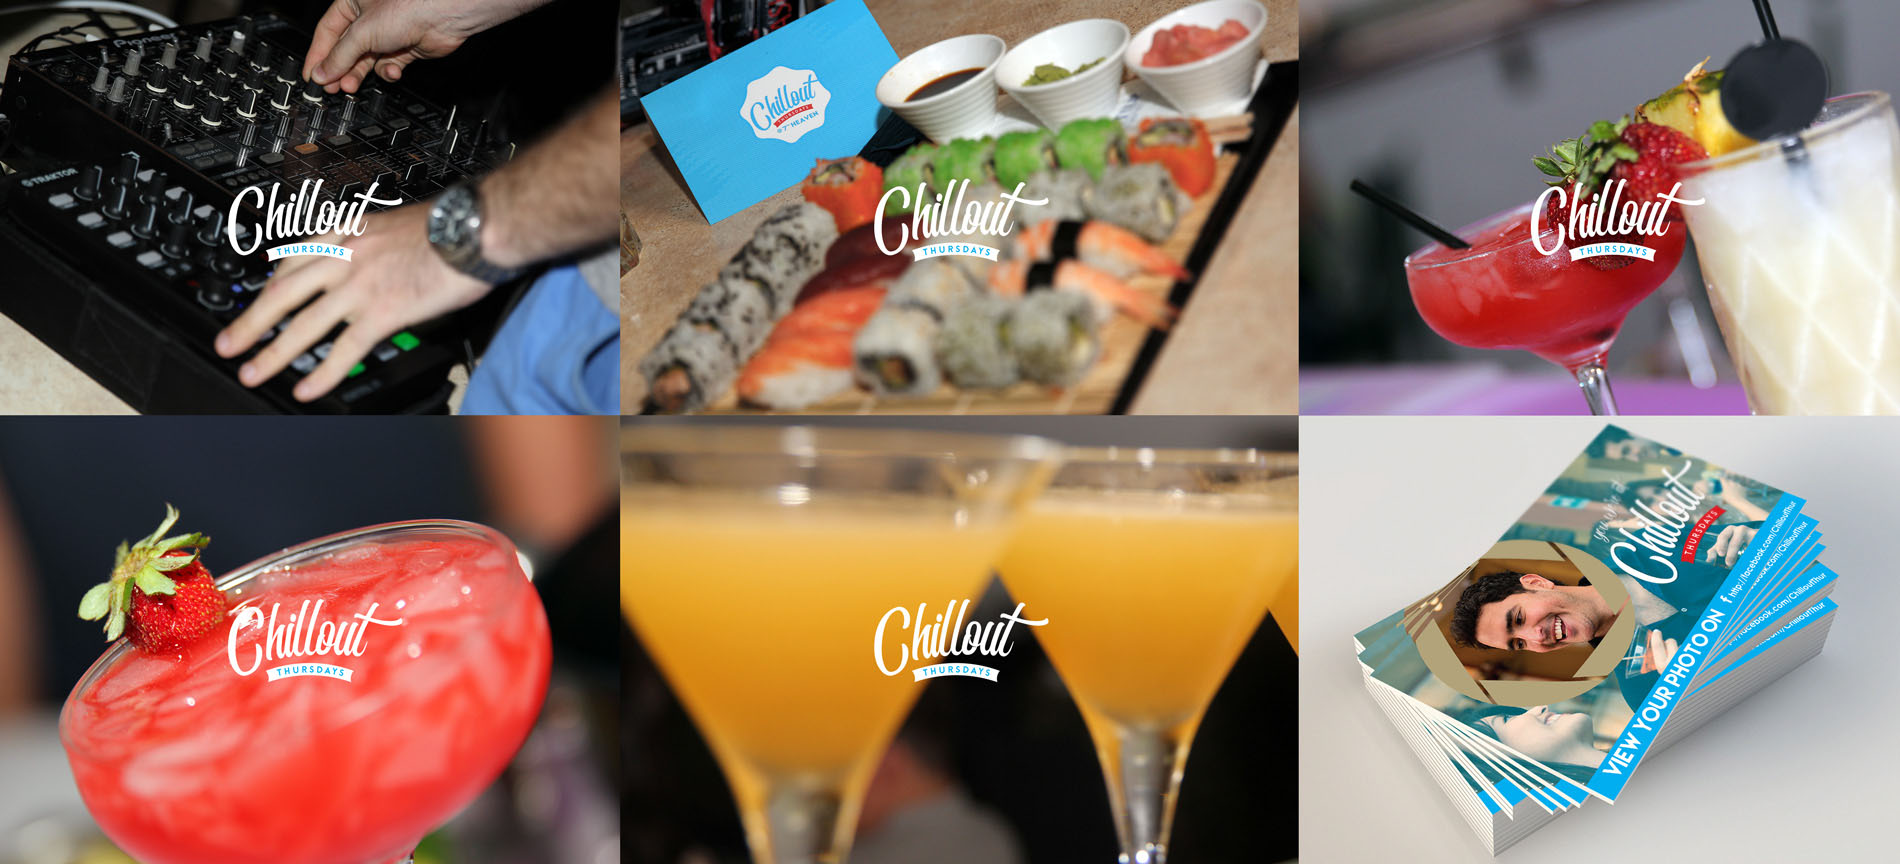 4Sight Create Branding & Digital Marketing Agency Malta - Project: Chillout Thursdays settimo cielo images